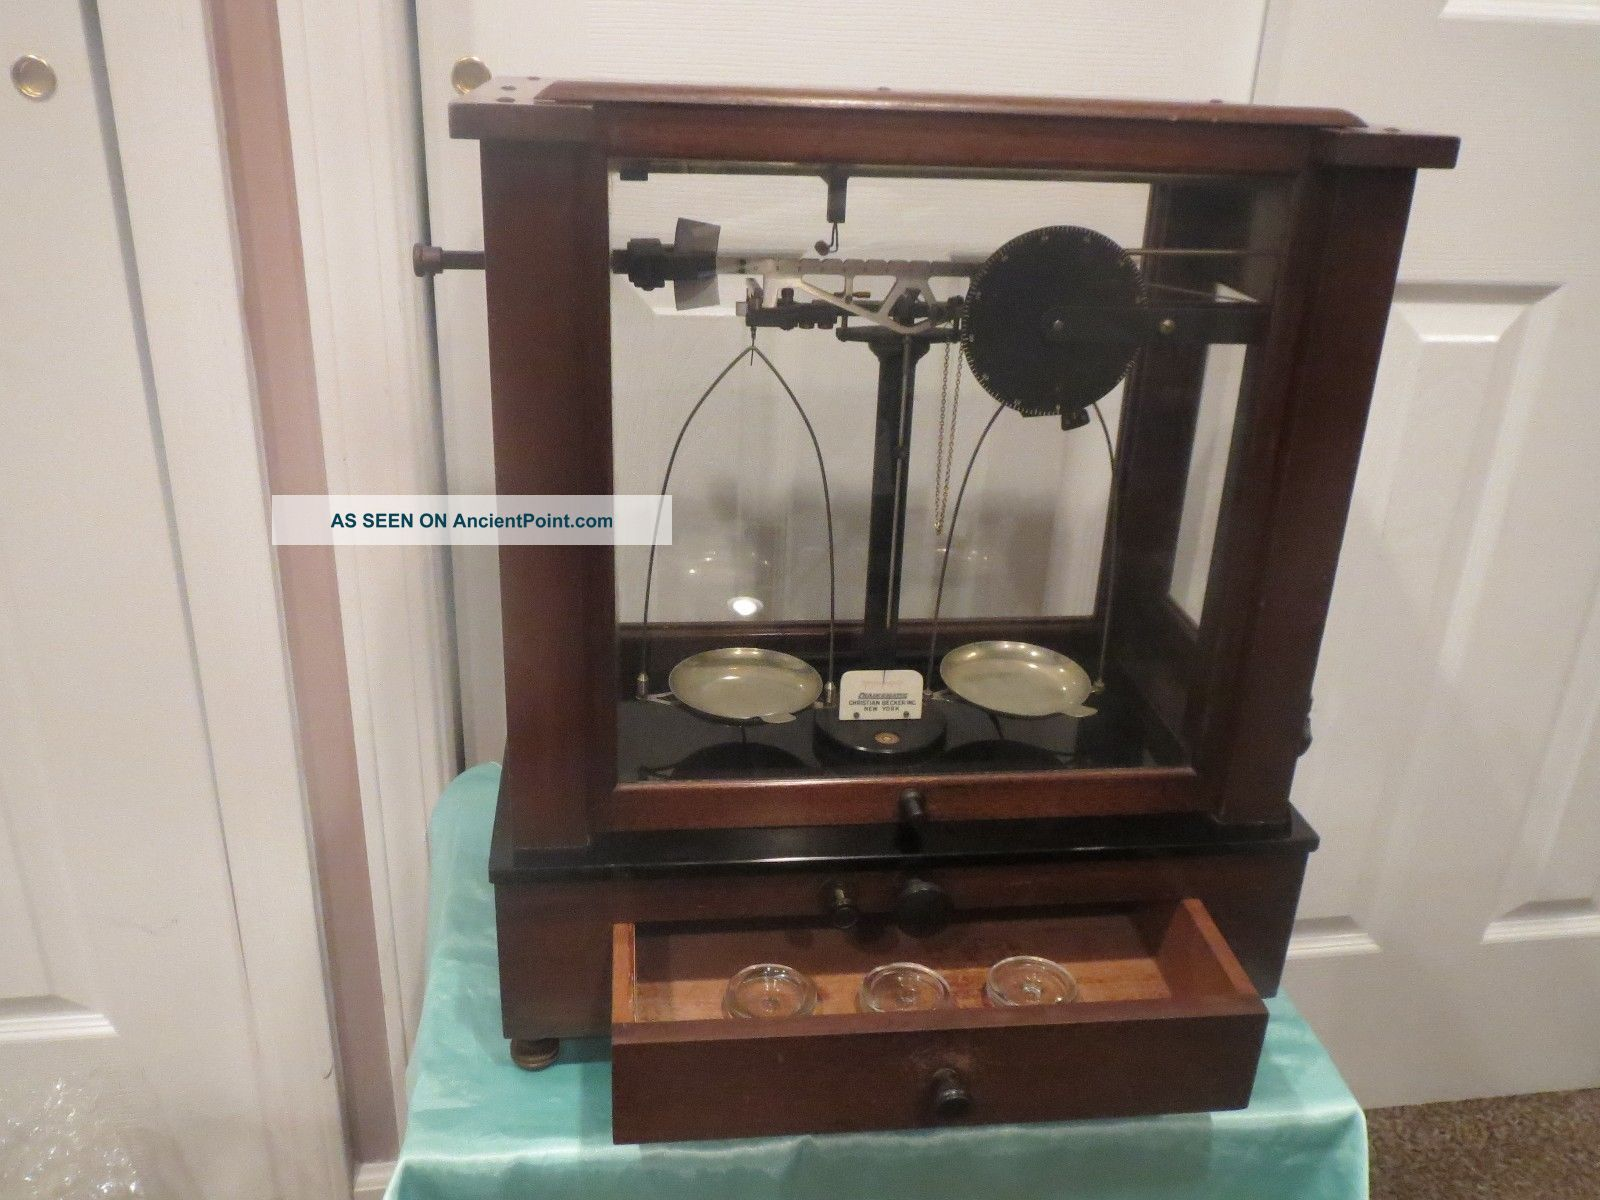 Christian Becker Vintage Chainomatic Jeweler Balance Analytical Apothecary Scale Scales photo